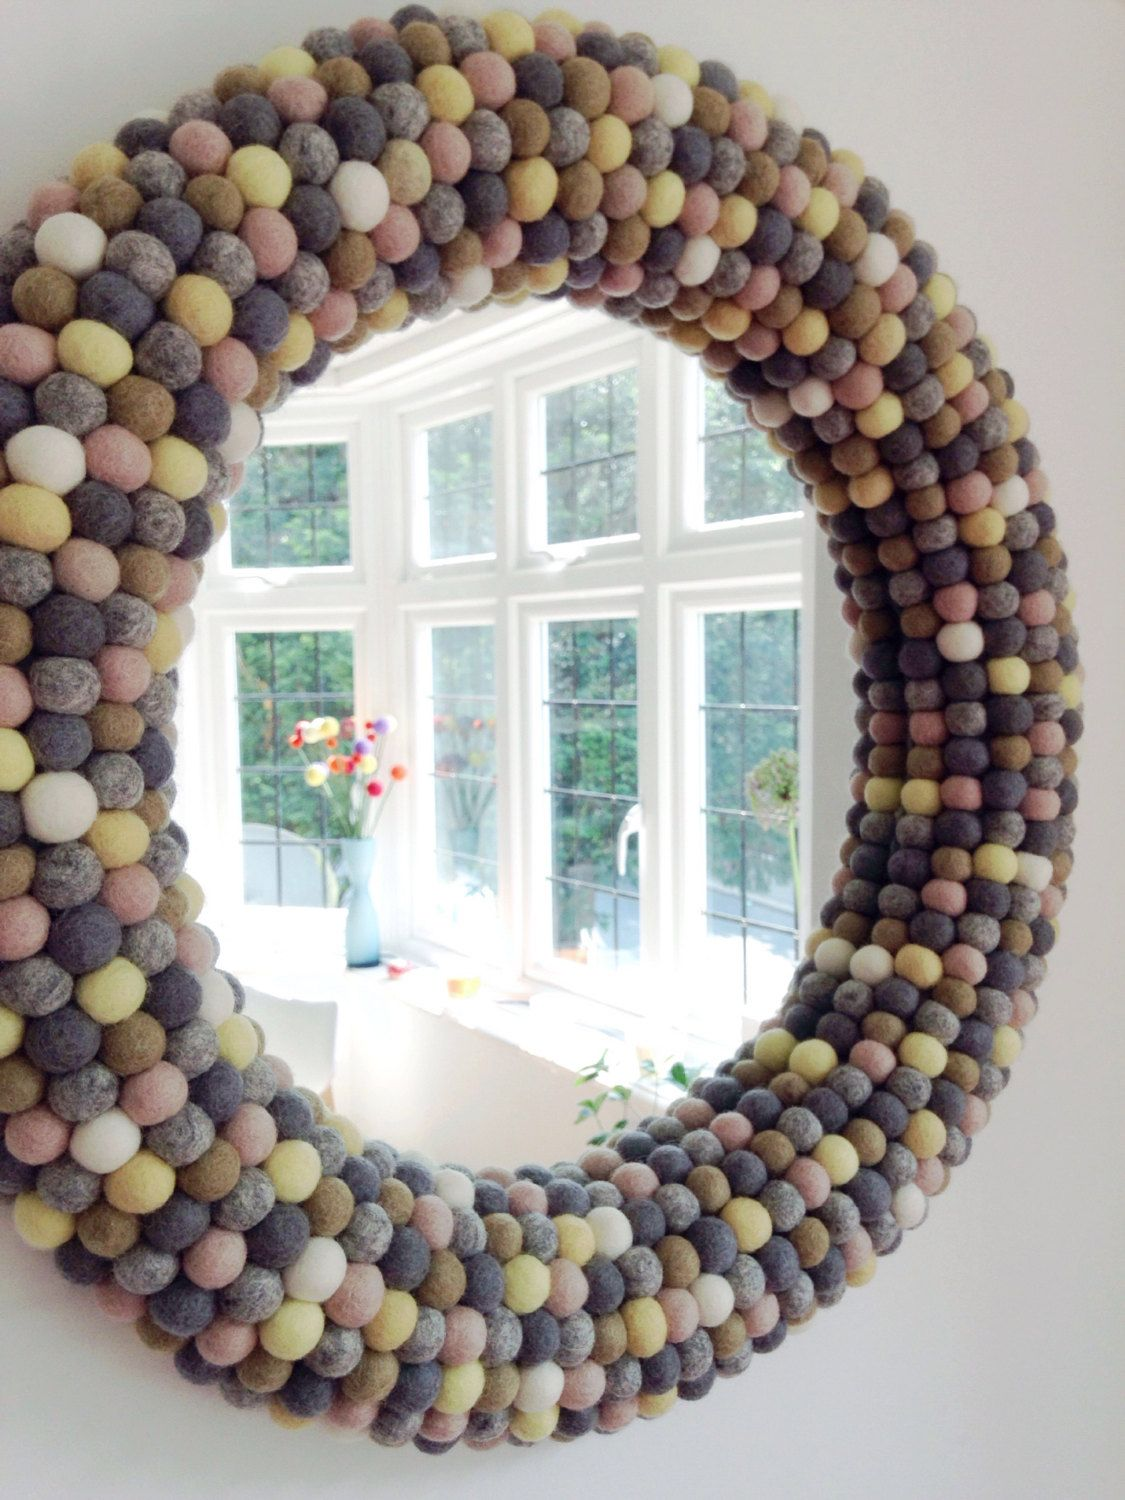 Large Round Wall Mirror Framed Felt Ball Mirror Decorative Mirror Custom Mirror Unique Wall Mirror Large Round Wall Mirror Round Wall Mirror Mirror Wall